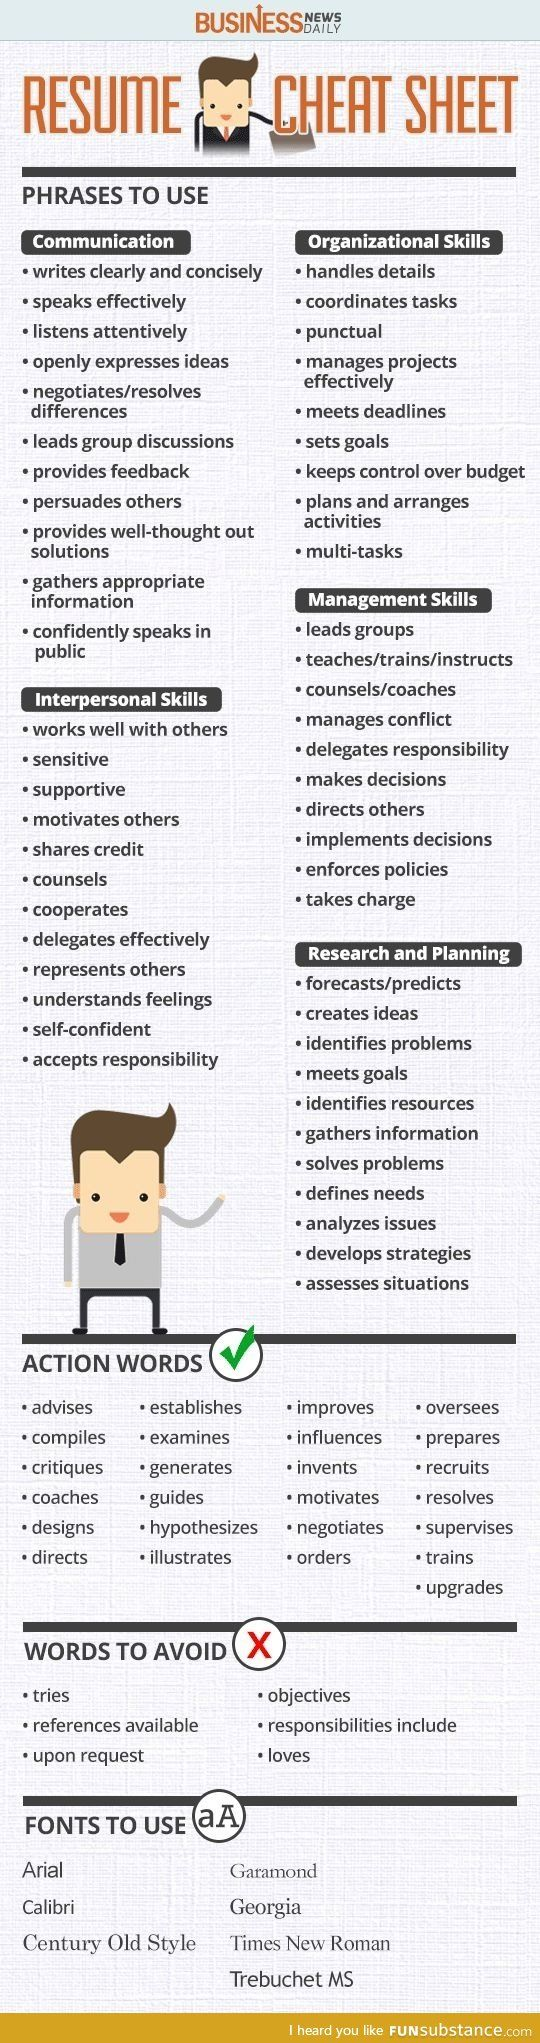 Cover Letter Cheat Sheet: 5 Tips For A Great Cover Letter ...